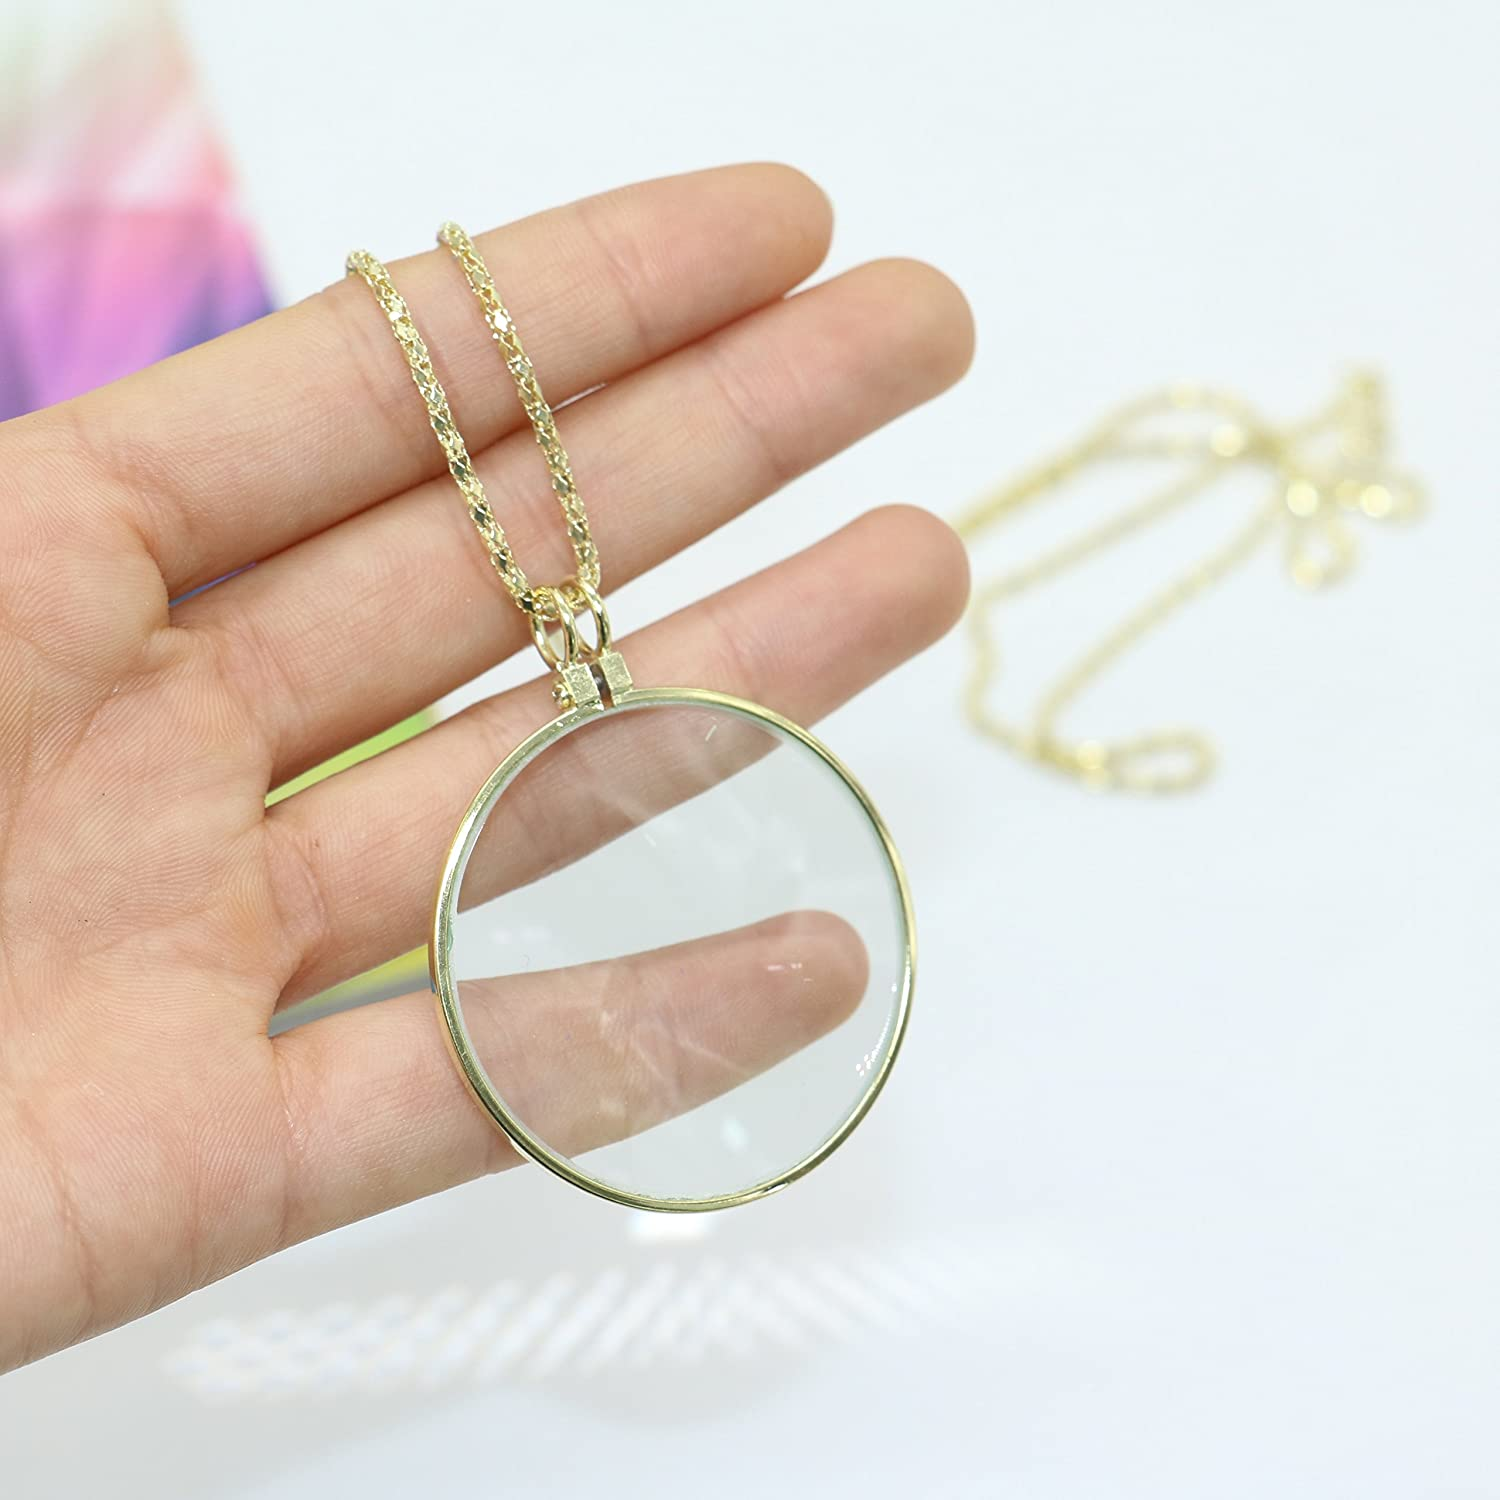 5X Necklace Jewelry Magnifier Gloden Coin Magnifying Glass Pendant for Library Jewelry Reading Fine Print Increase Vision by Ids